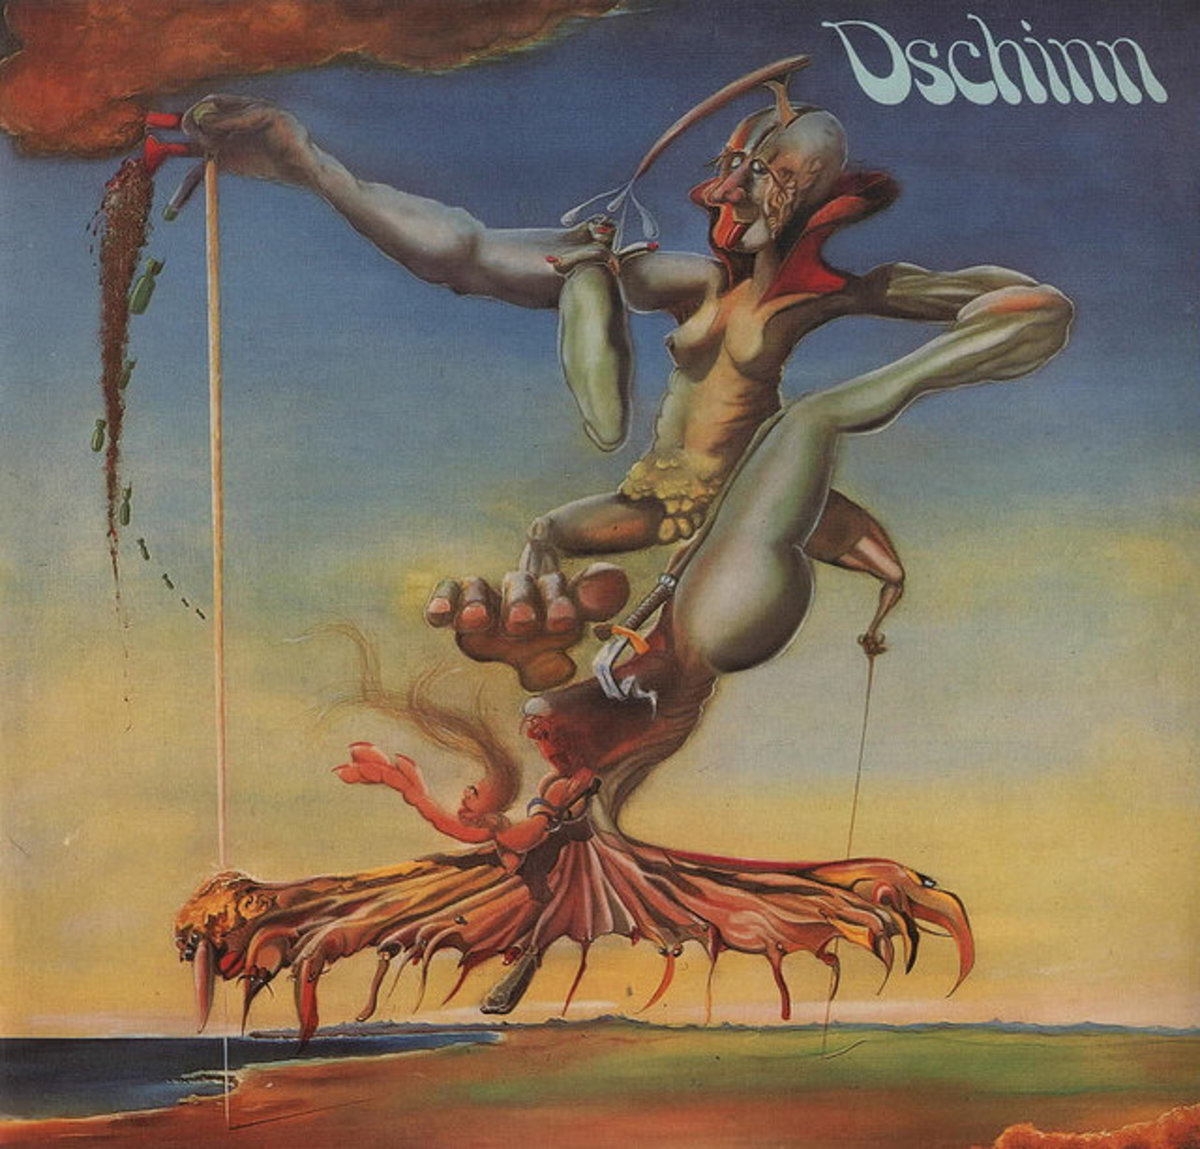 "Dschinn ""Dschinn"" Bellaphon / Bacillus Records BLPS 19120 12"" LP Vinyl Record (1972) German Pressing"